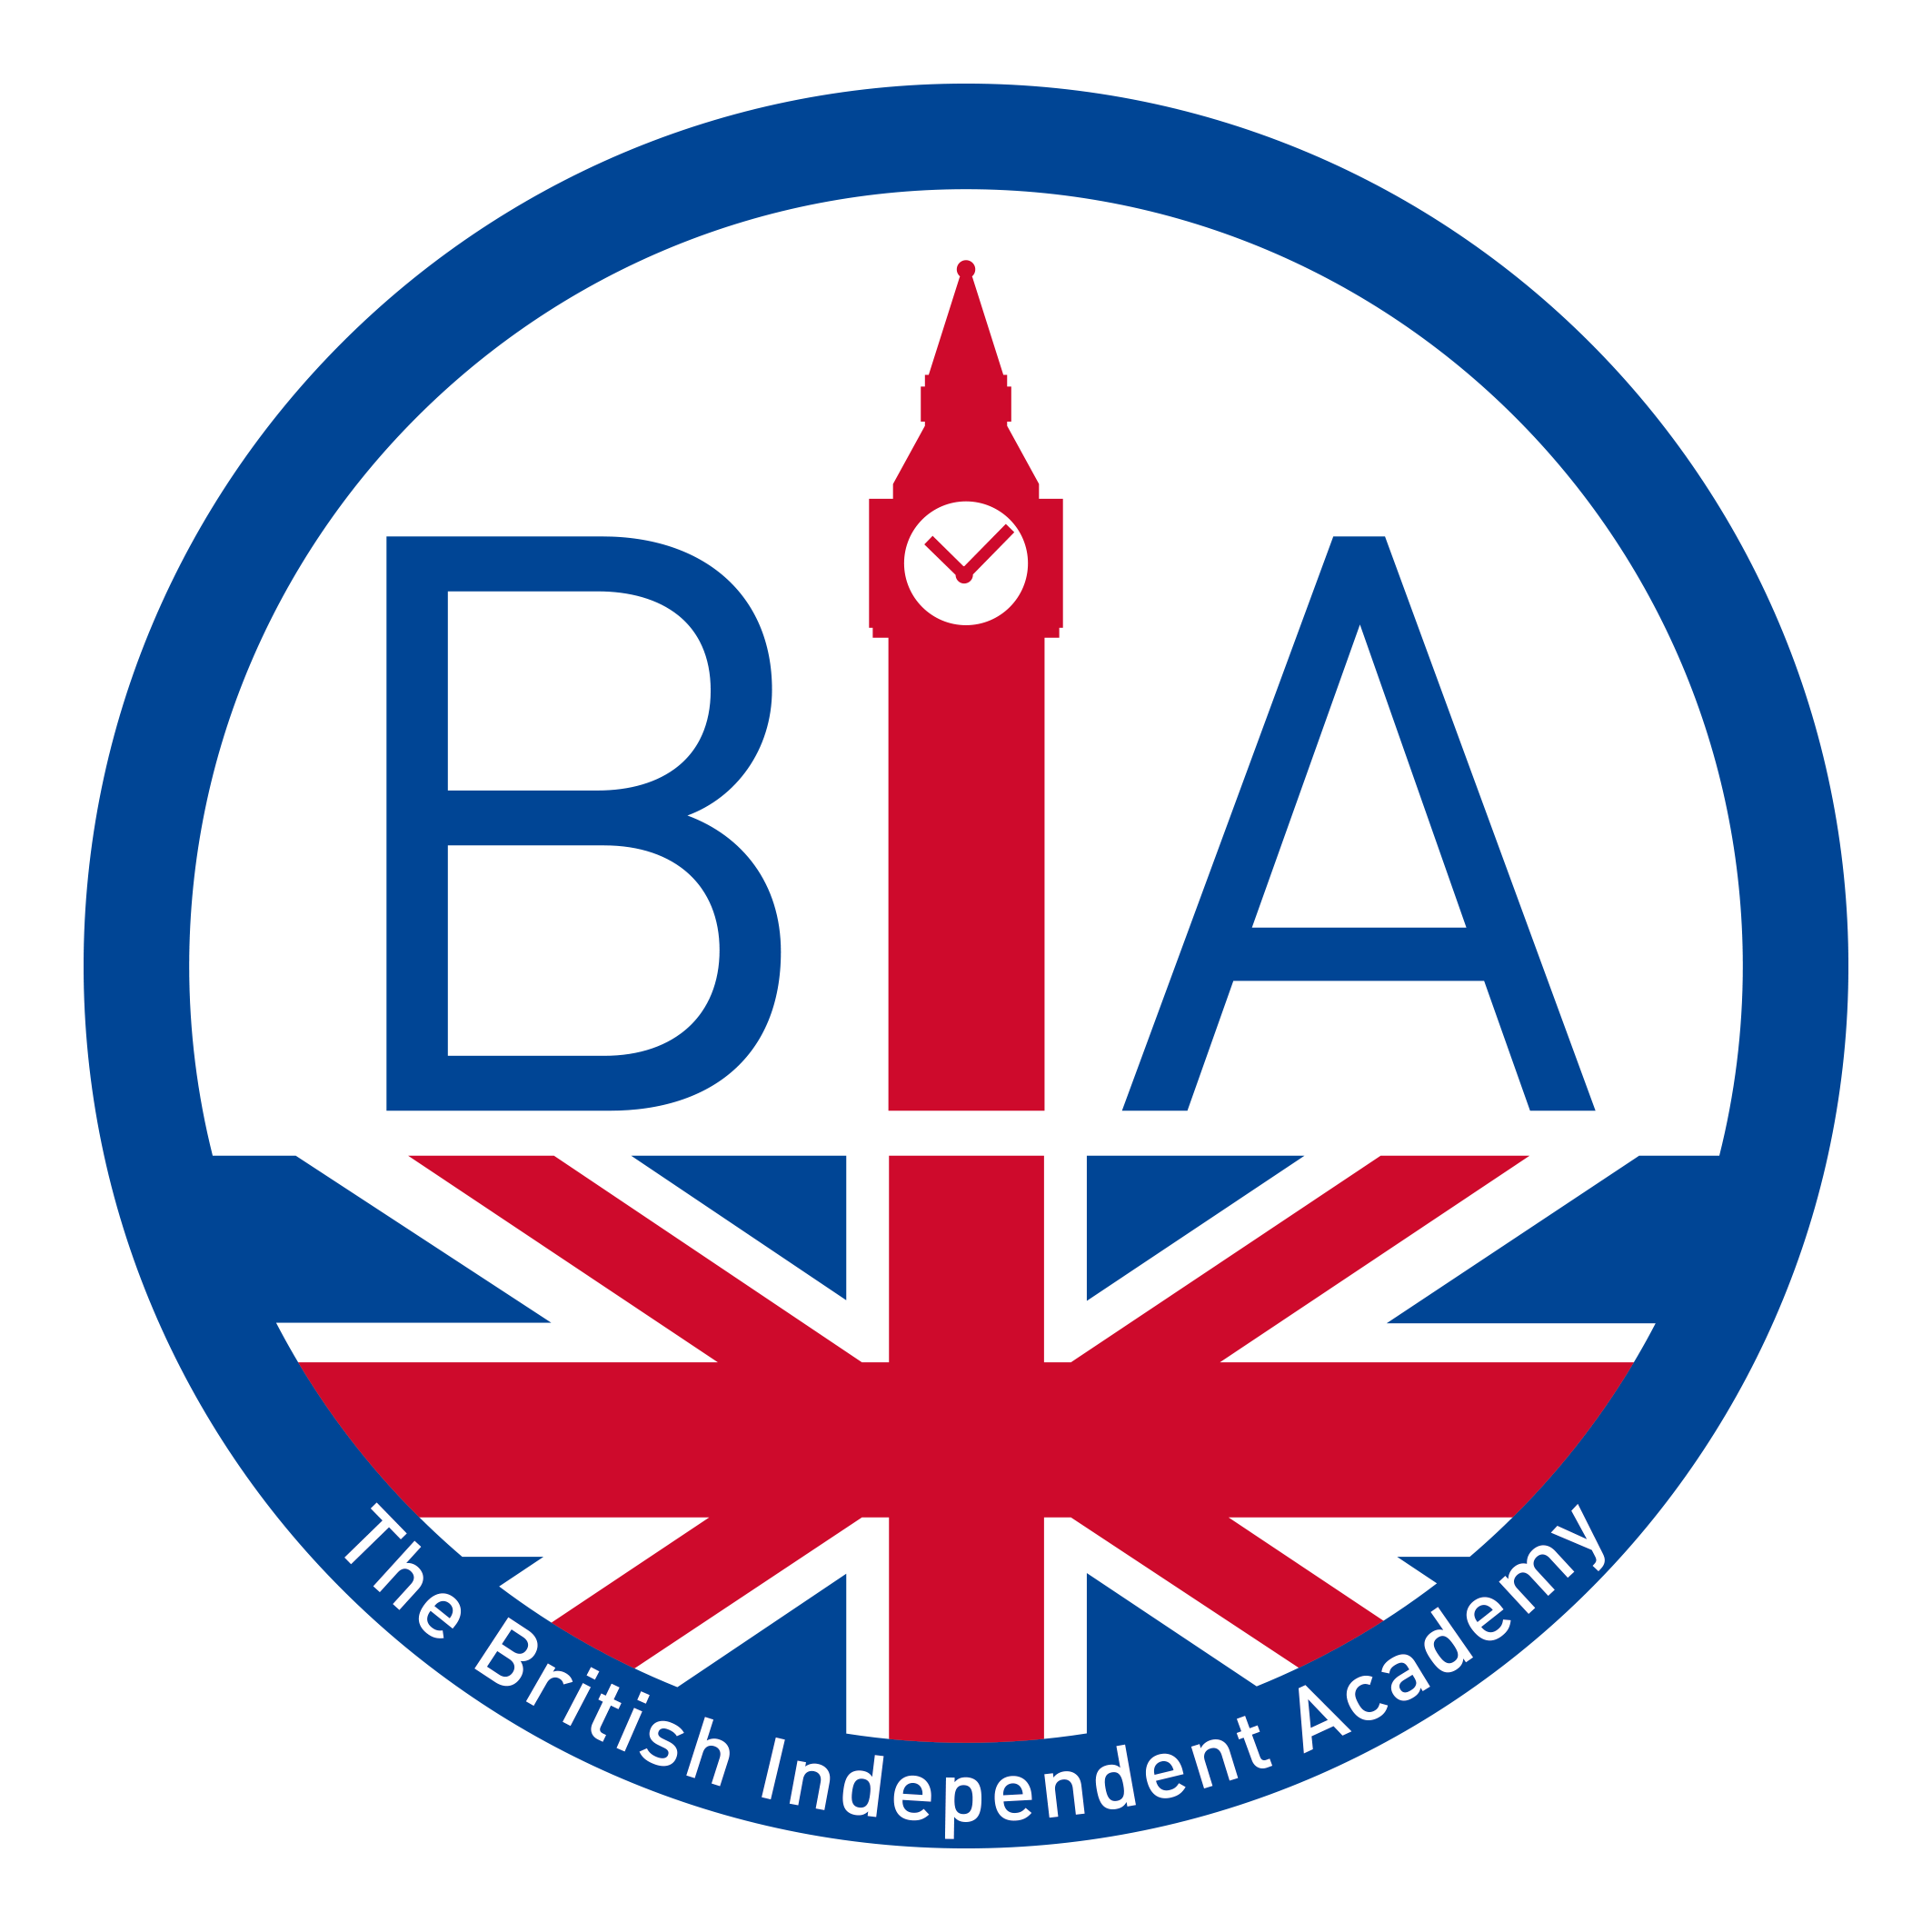 The British Independent Academy